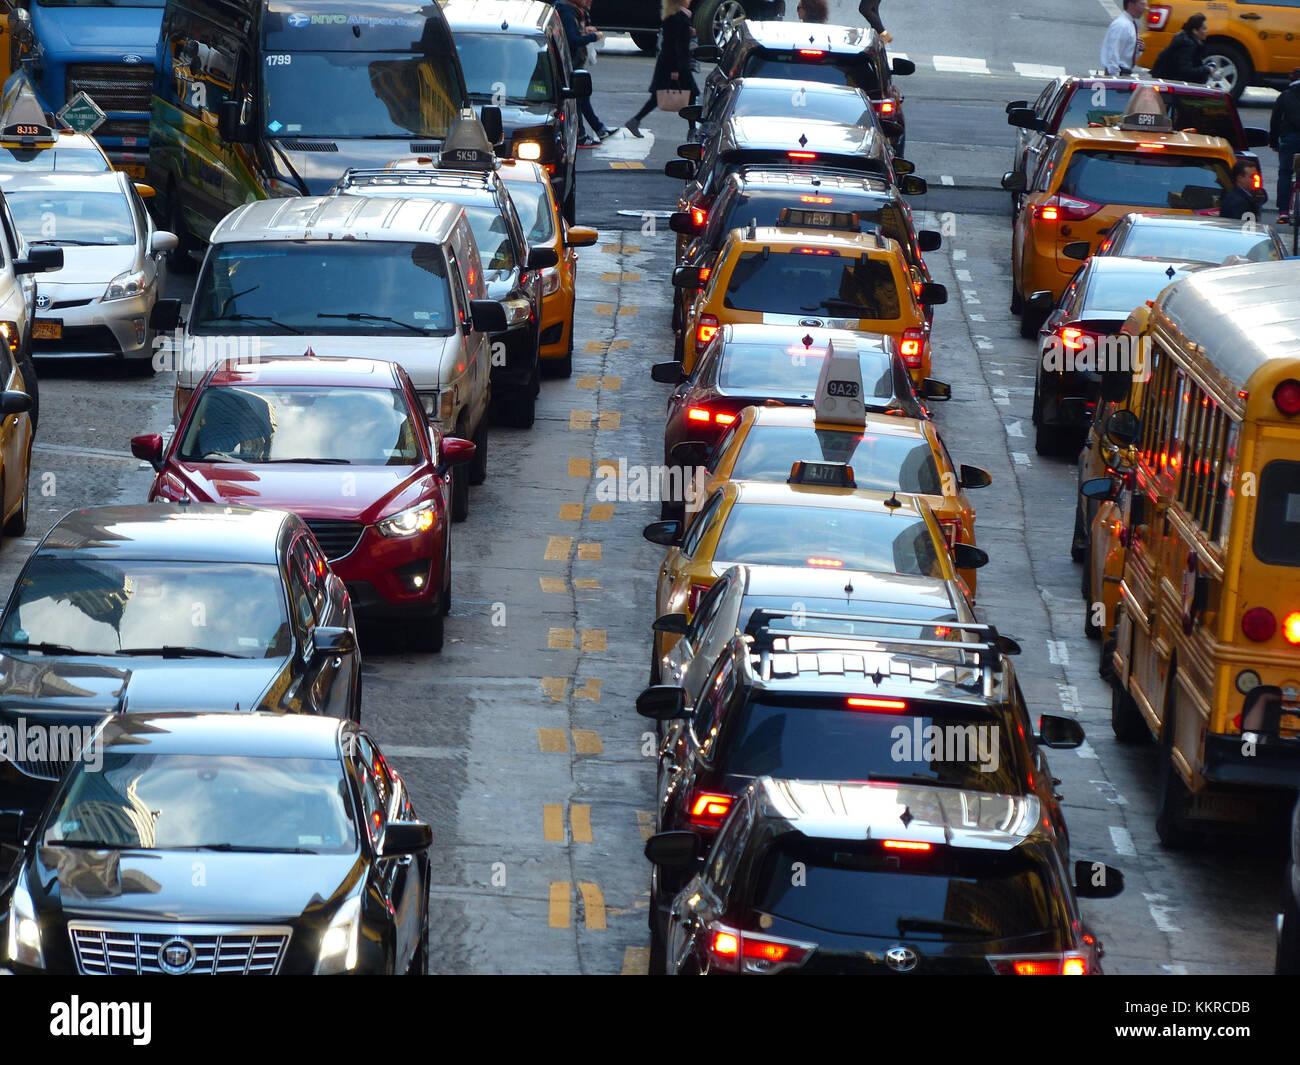 Car jam on 42nd Street at Grand Central terminal - Stock Image